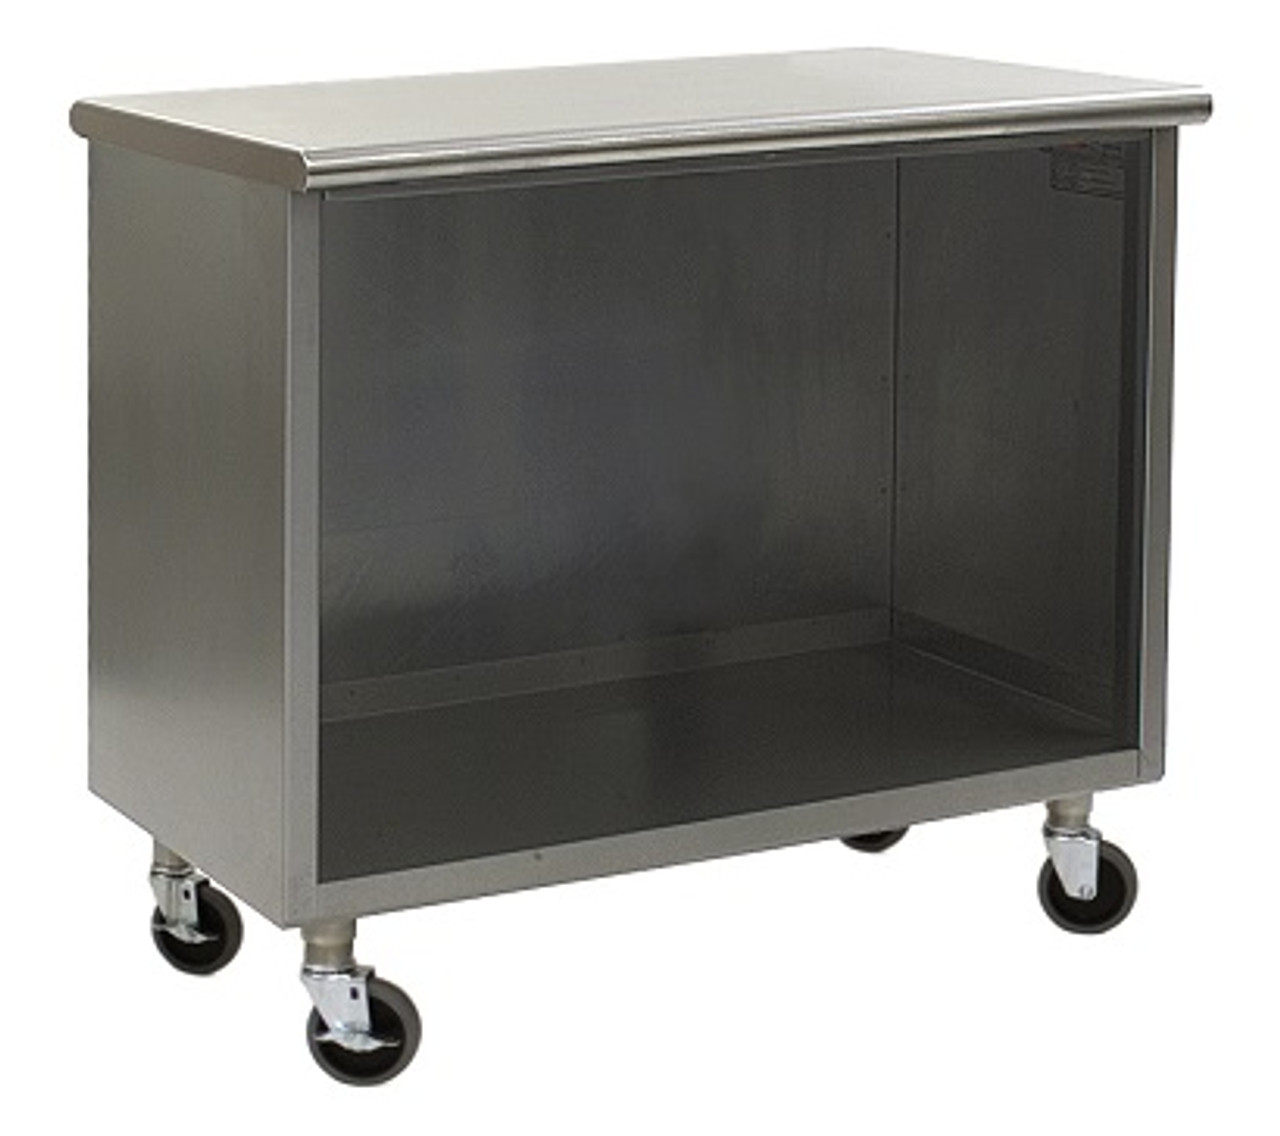 Stainless Steel Lab Cabinets Flat Top Wheels Type 304 Stainless Steel Open Base Lower Storage 30 X 36 Ea Cr Ob3036se Cah